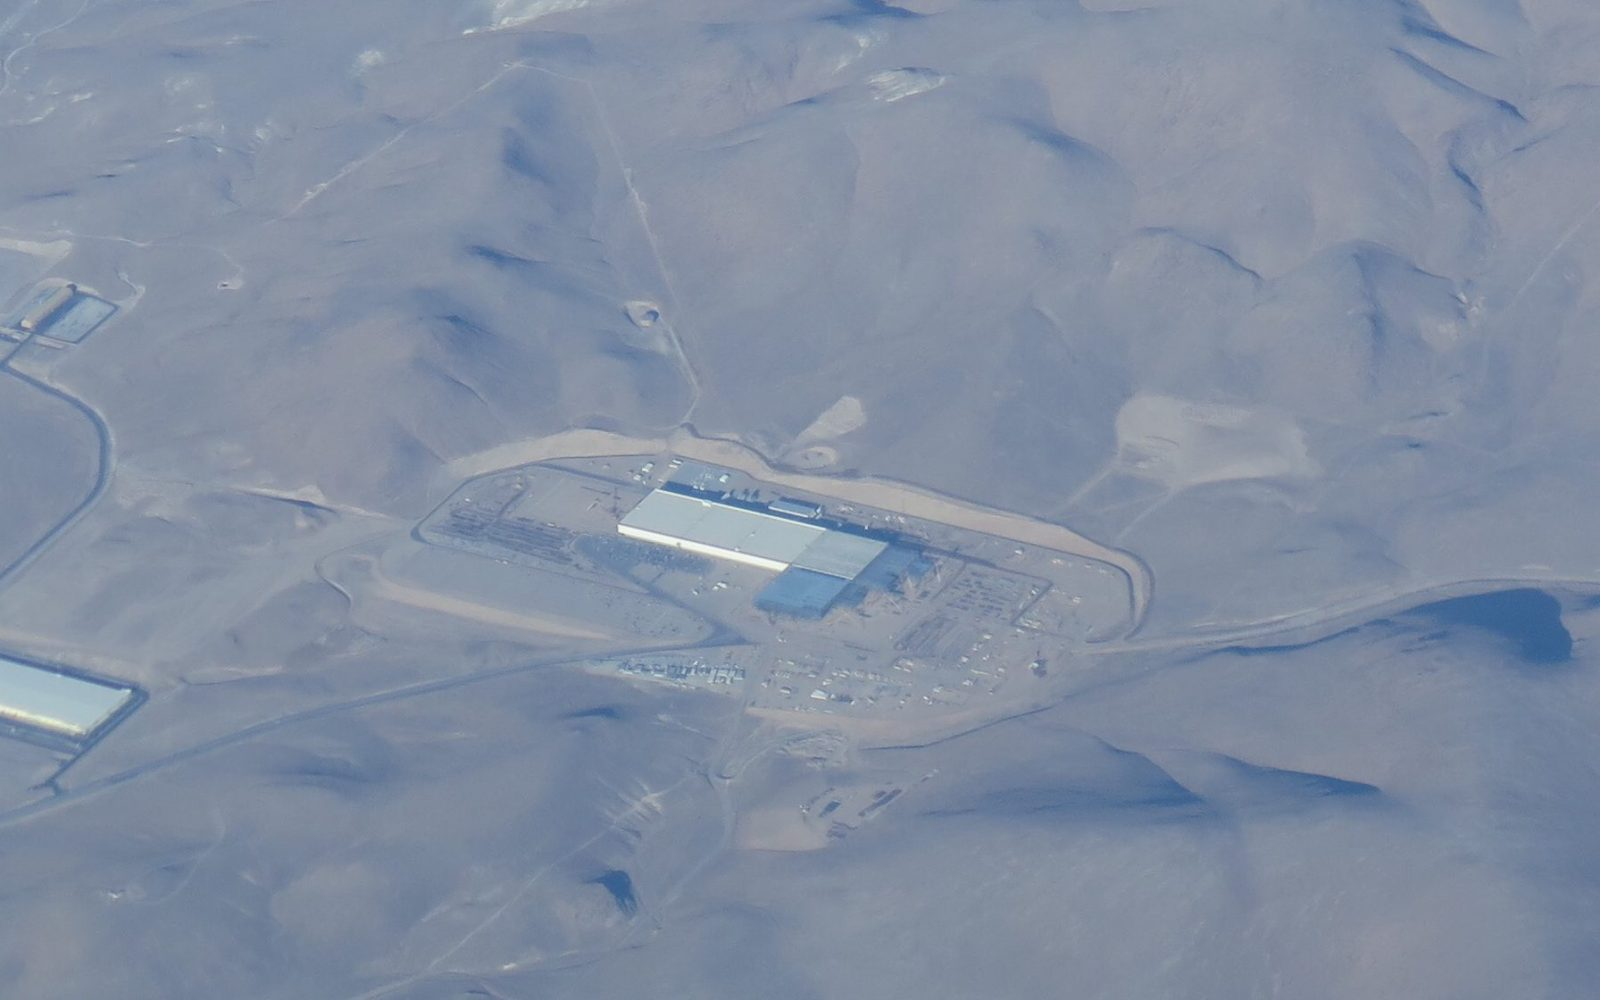 New aerial picture of the Tesla Gigafactory shows new sections going up